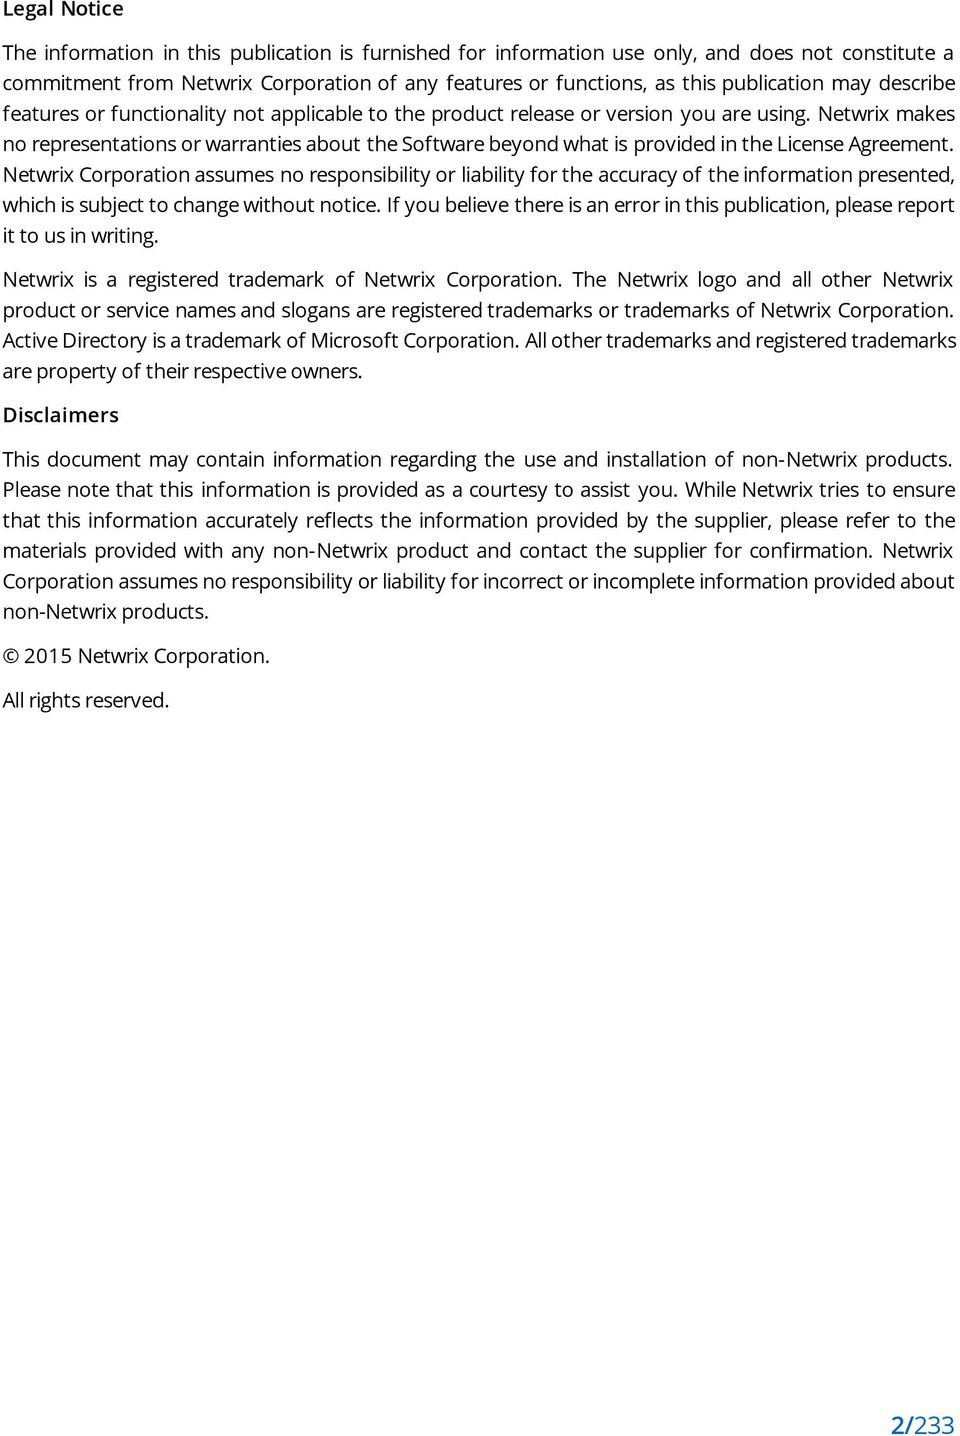 Netwrix makes no representations or warranties about the Software beyond what is provided in the License Agreement.